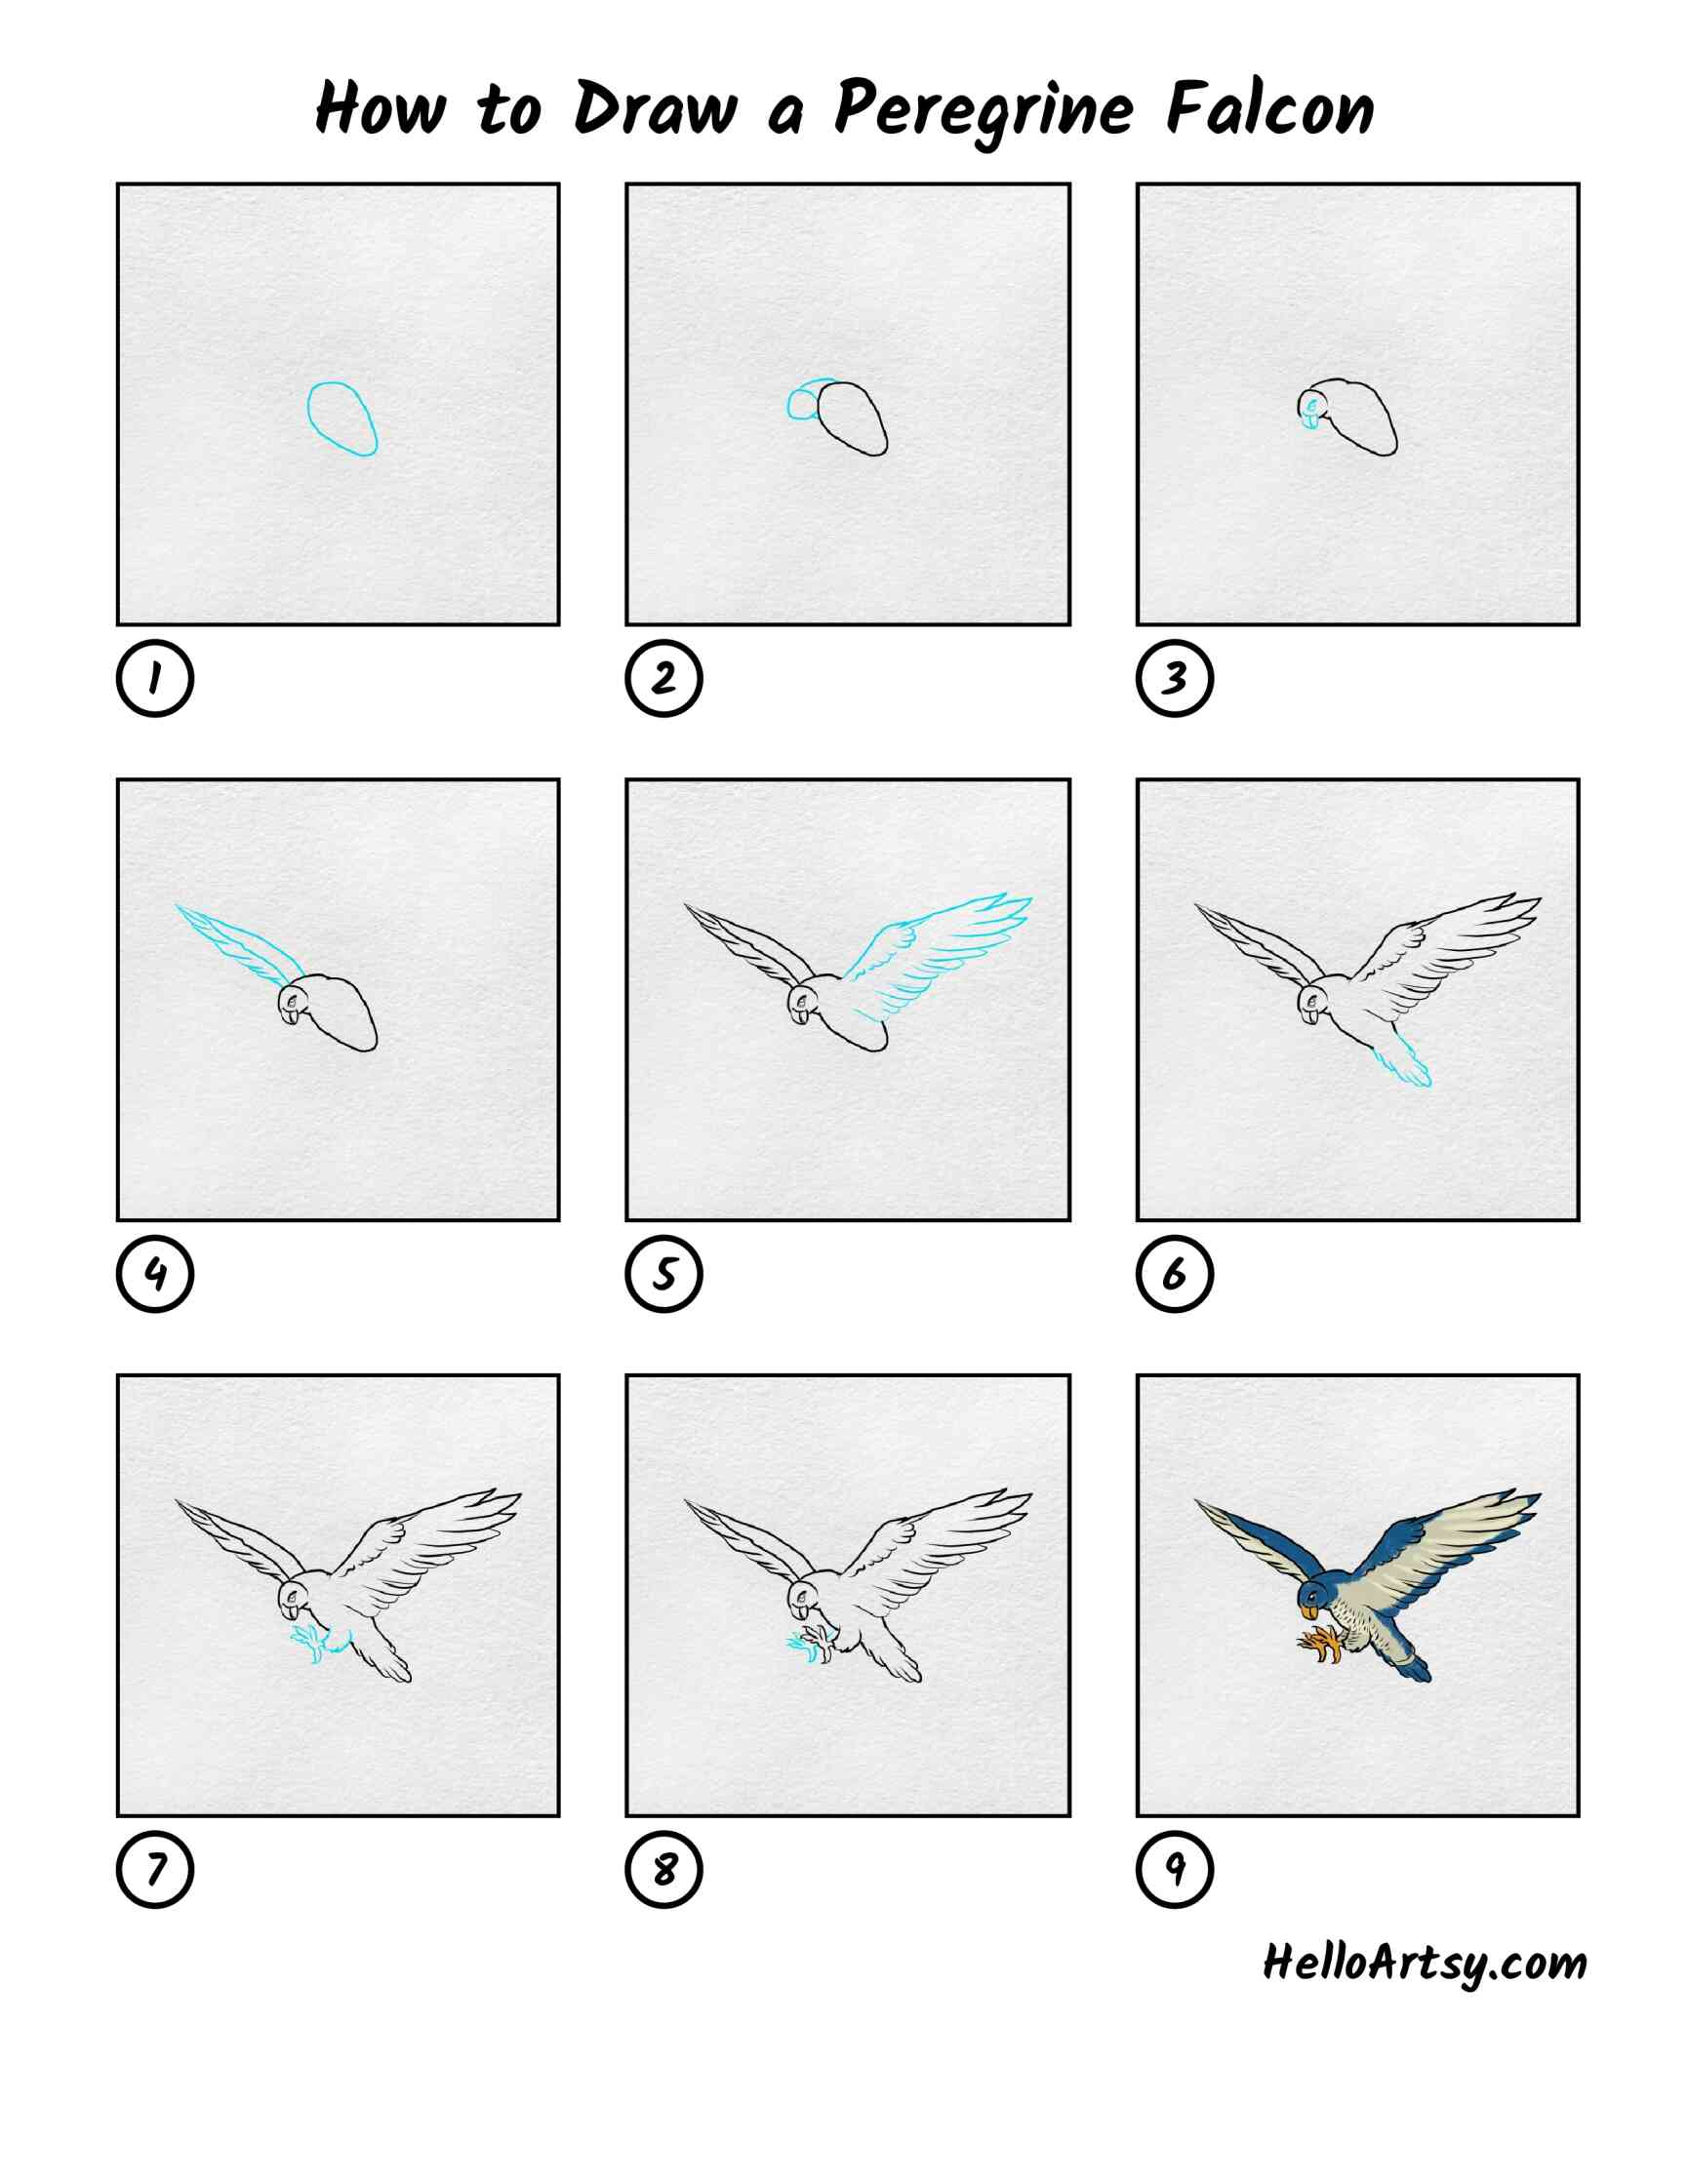 How To Draw Peregrine Falcon: All Steps